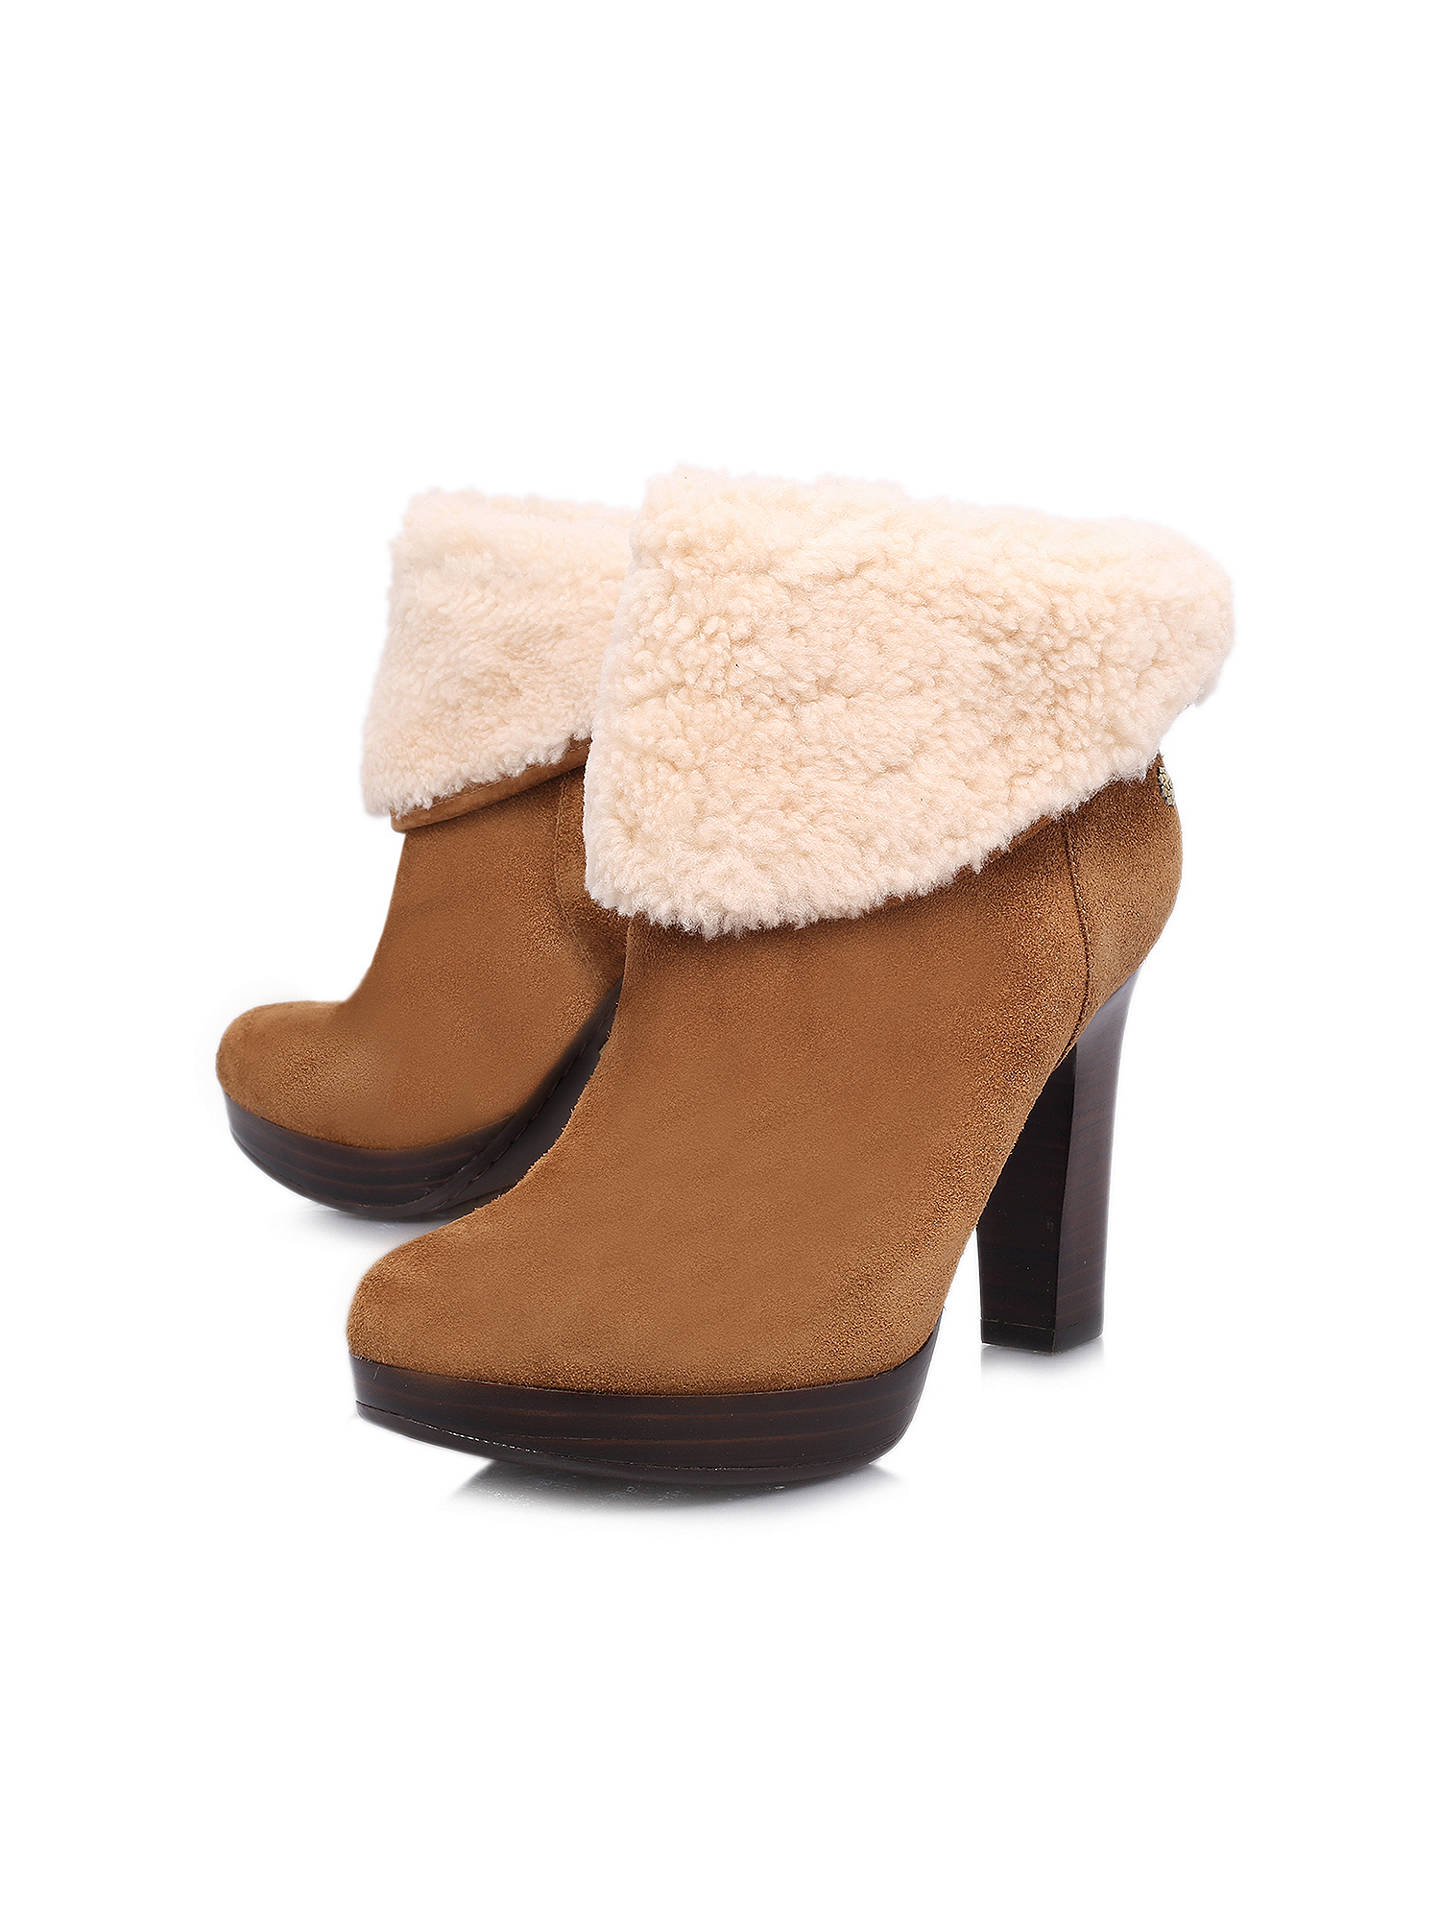 376034d8ac2 Ugg Dandylion II Suede Ankle Boots at John Lewis & Partners